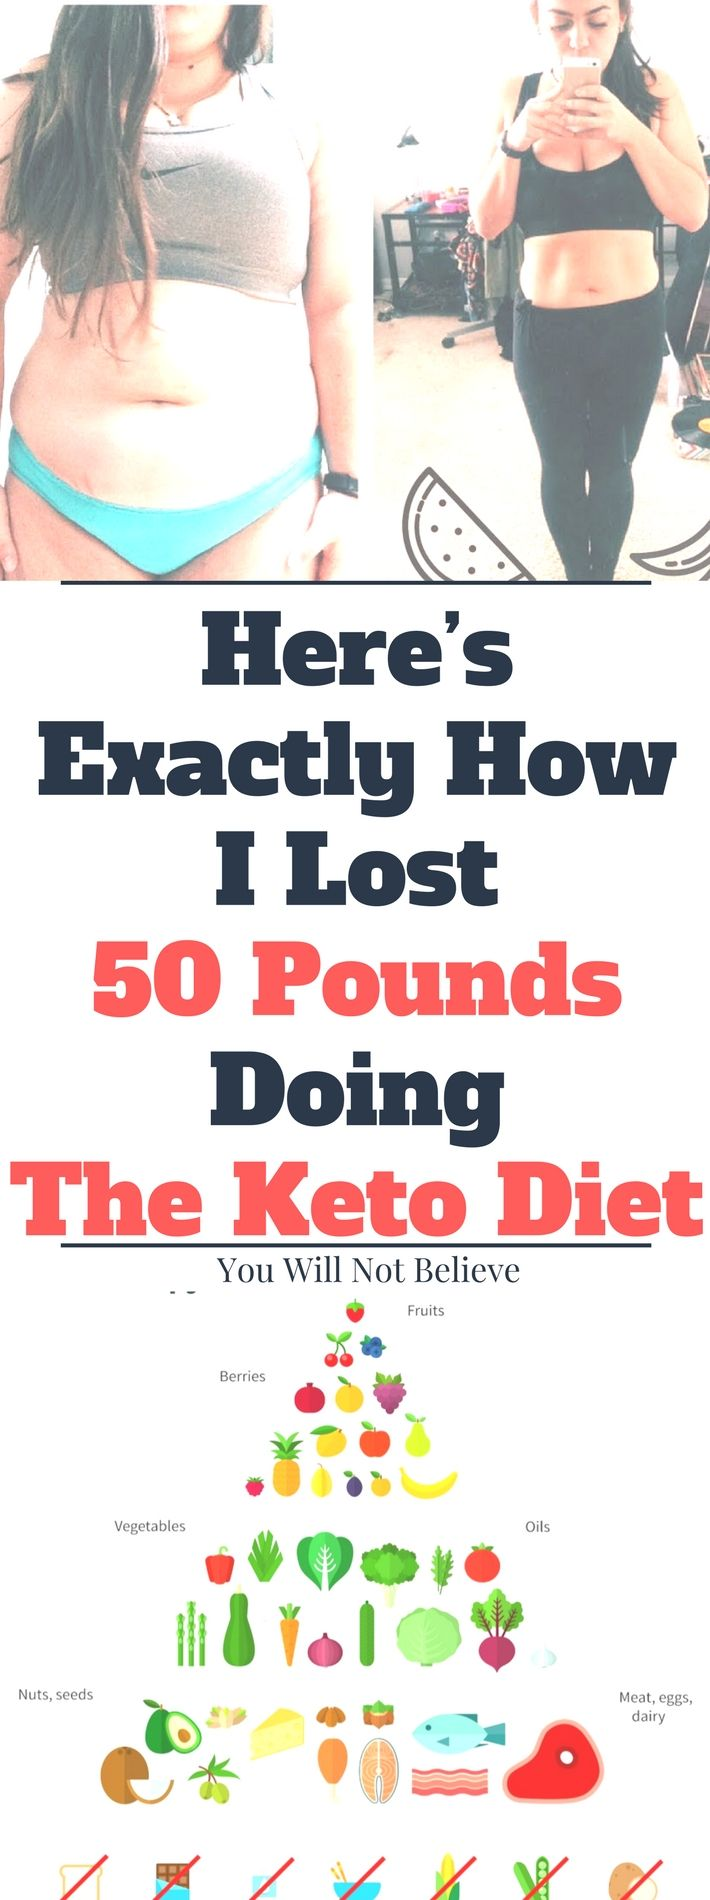 Here's Exactly How I Lost 50 Pounds Doing The Keto Diet!!!! Read! #fitnessgirl #fitnessmom #transformations #fitnesslife #abs #train #healthy #healthylifestyle #sisepuede #tattoo #tattoossometimes #fridaynight #gymsession #weightloss #legsgains #ladybeast #triplet #fitnessjourney #fitnesslifestyle #fitnessfreak #girlswholift #nopainnogain #getstrong #mondaymiles #chestday #seenonmyrun #trainhard #strengthtraining #physiquefreak